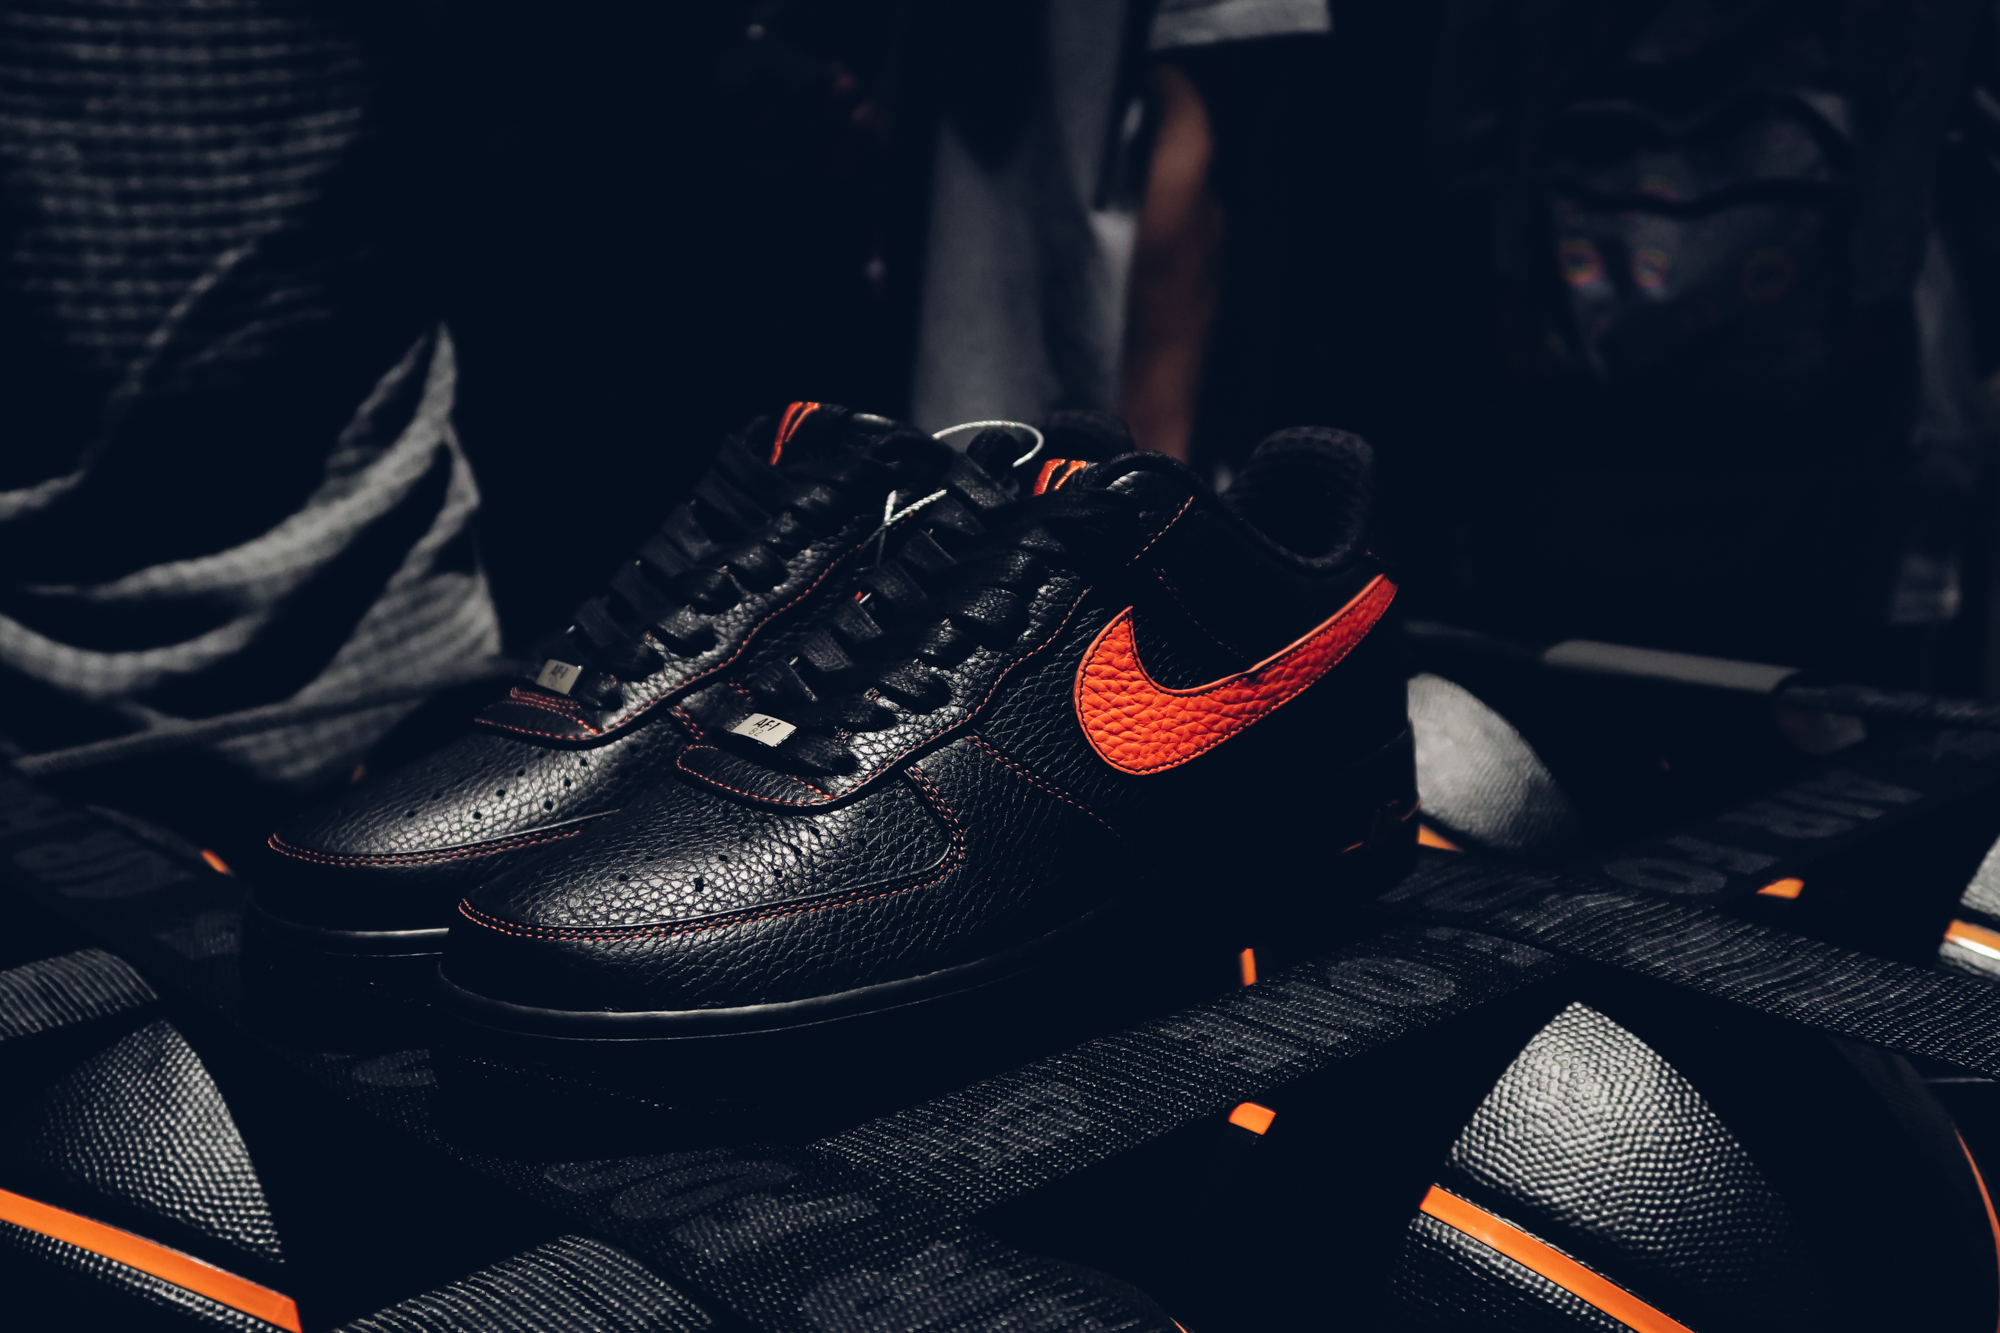 fbbacde44788 A AP s VLone x Nike Air Force 1 Low Powerful Collab Is About to Drop ...